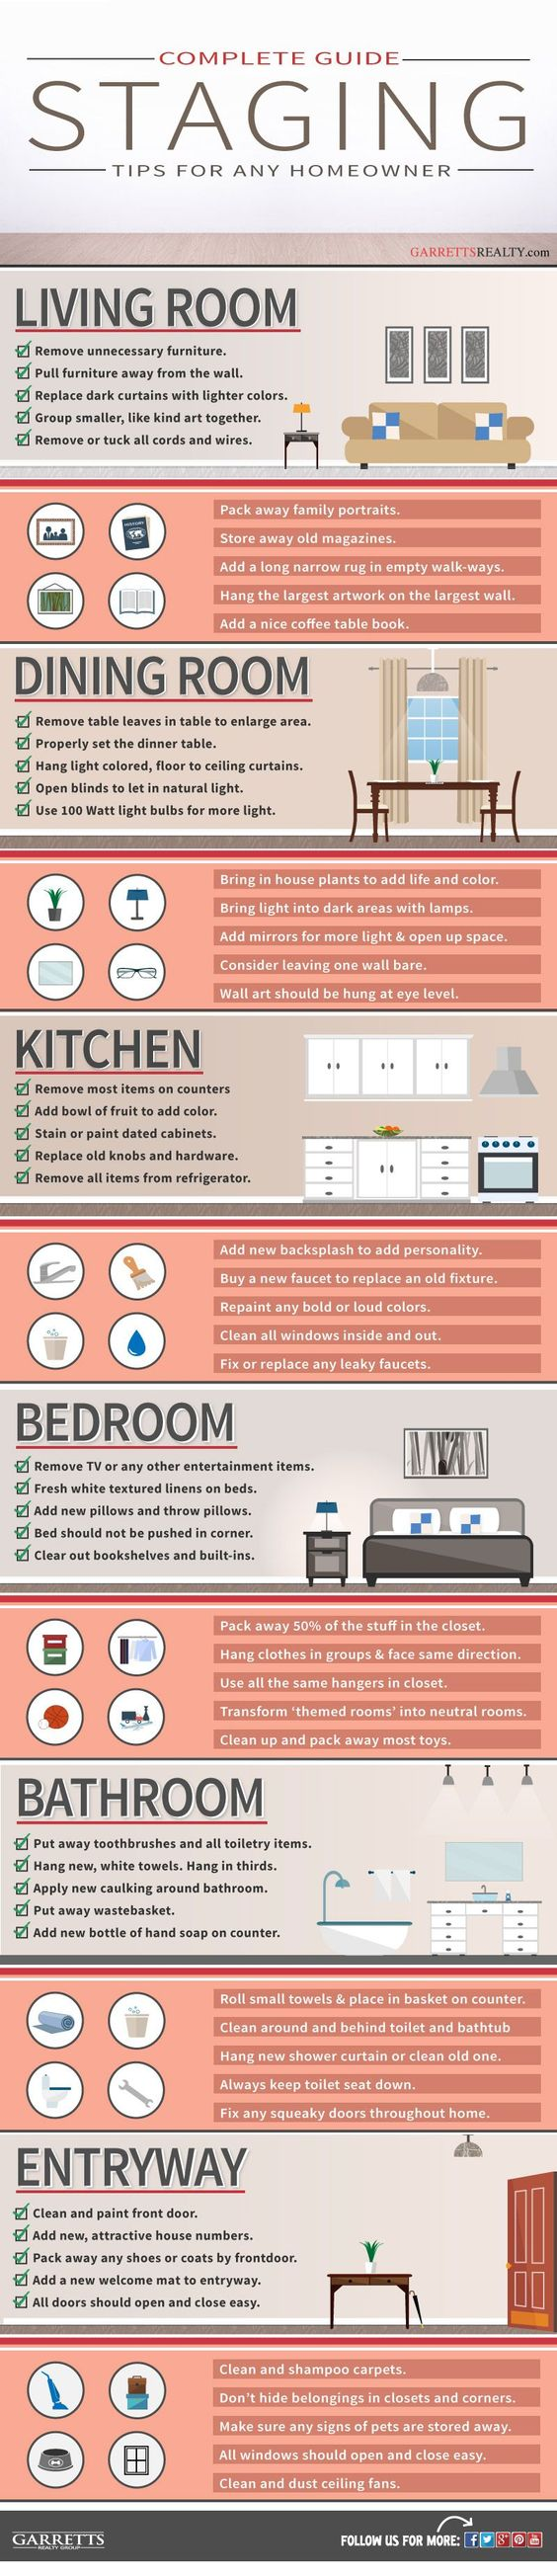 60 different tips to follow when staging a home for sale - Infographic.